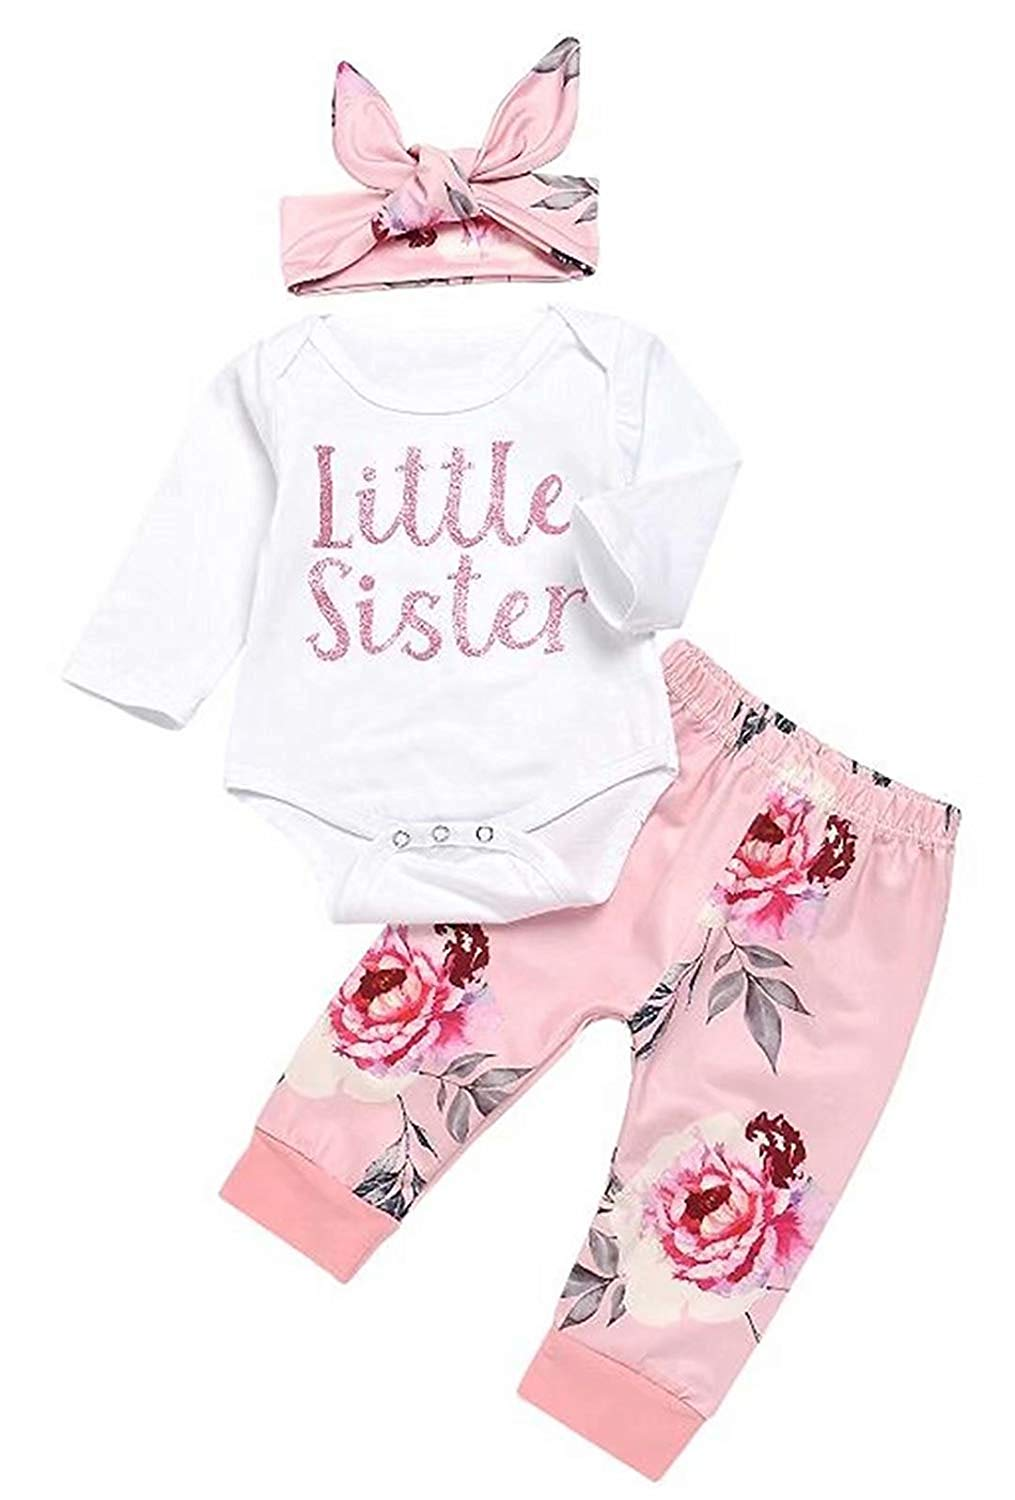 1e471103d Newborn Baby Girls 3Pcs Outfits Set Little Sister Bodysuit Romper Tops  Floral Print Pants with Headband